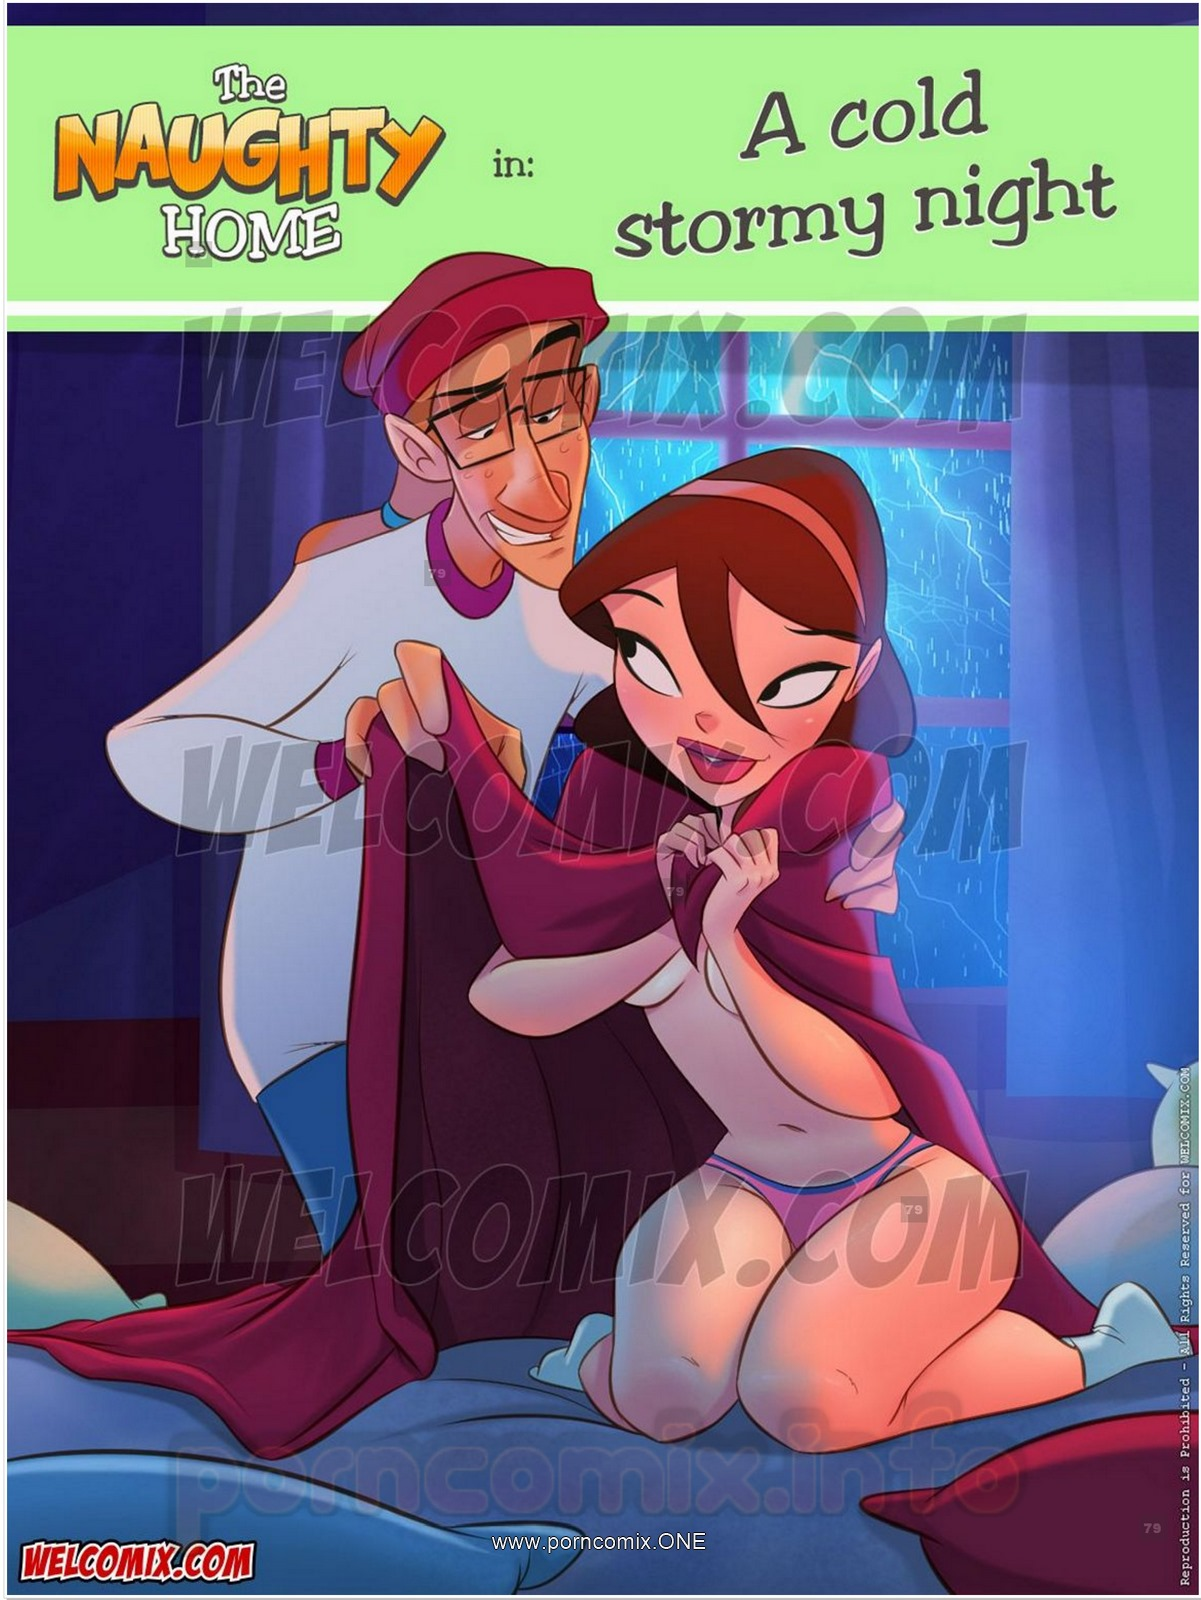 Naughty Home 21- Cold Stormy Night- Welcomix porn comics 8 muses